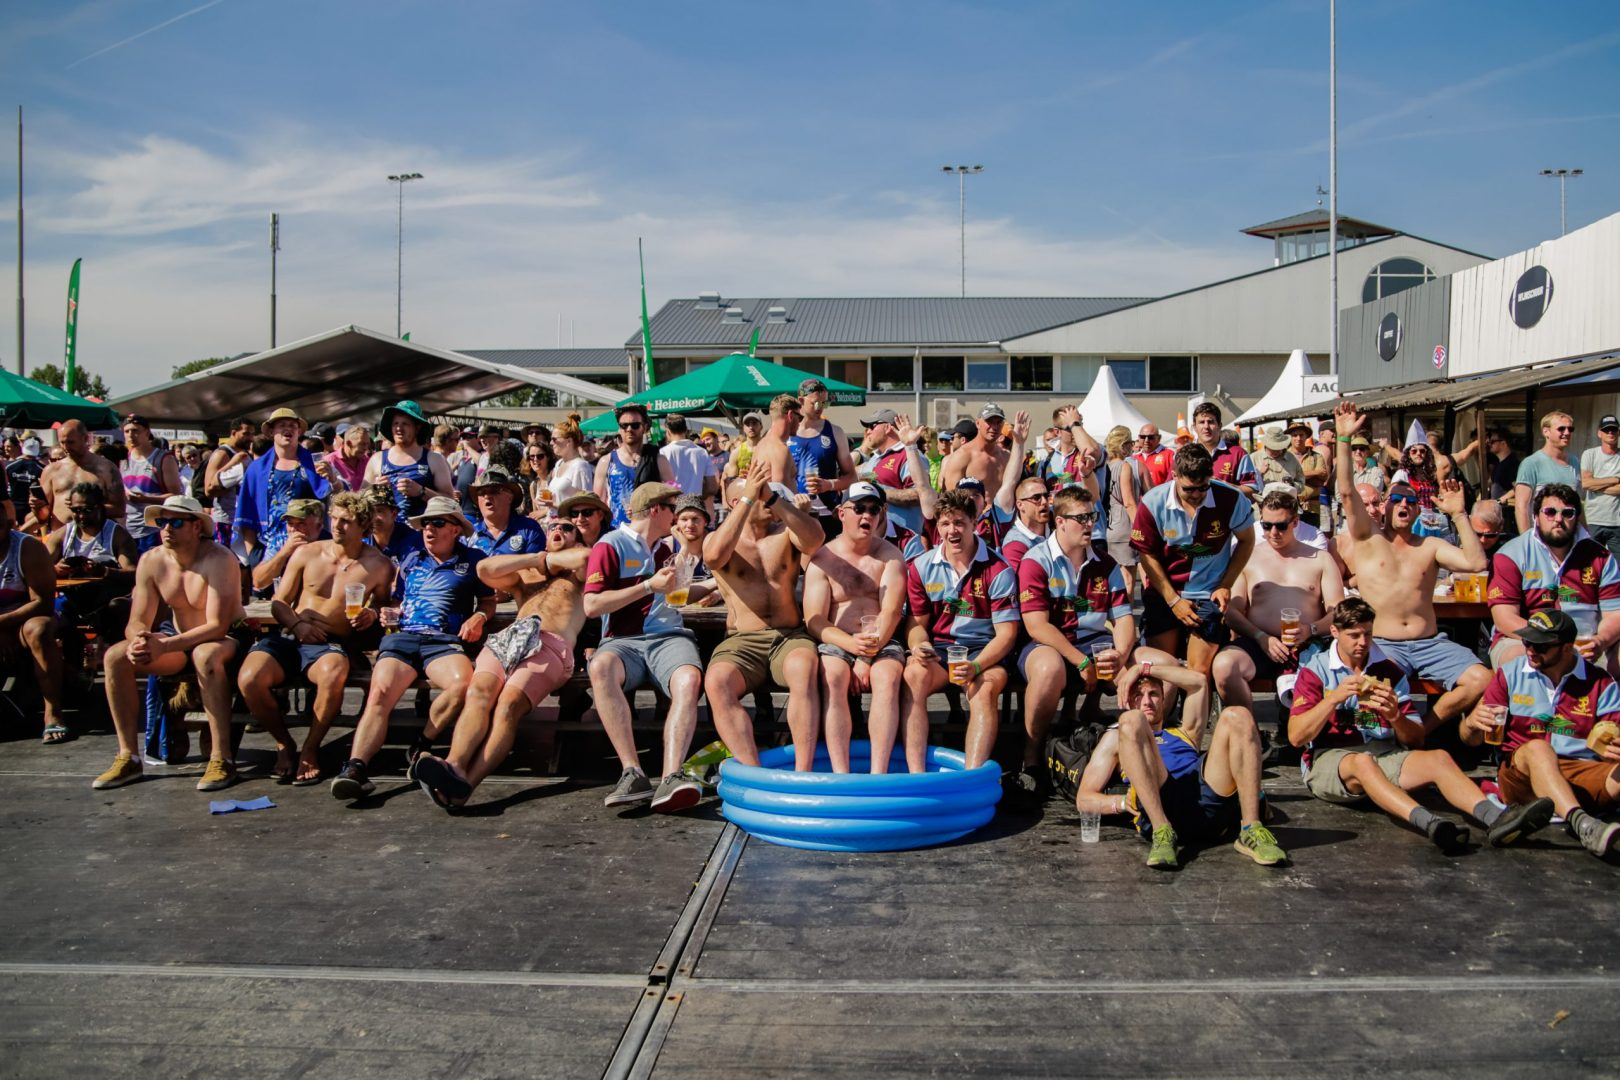 Amsterdam Rugby Sevens visitors